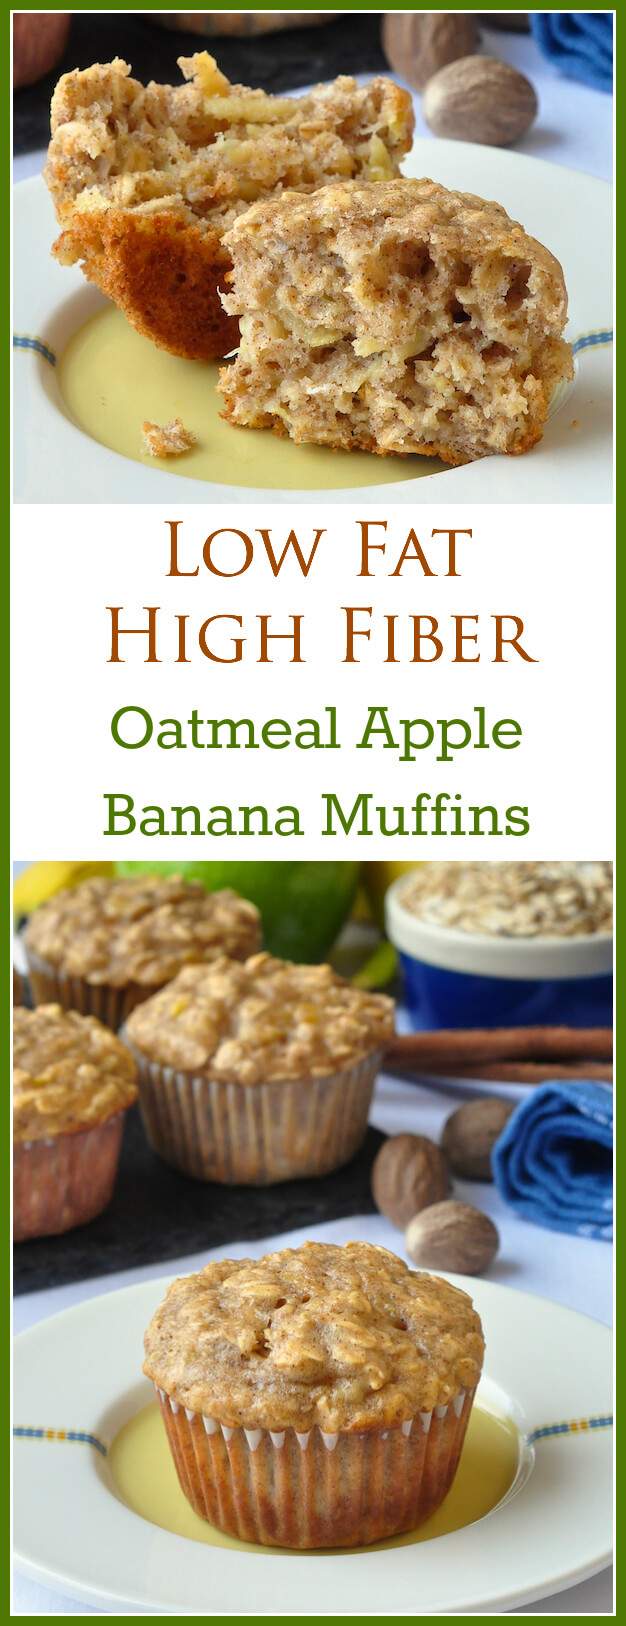 Oatmeal Apple Banana Low fat Muffins – A very easy to make recipe for moist, delicious, wholesome breakfast muffins that use a